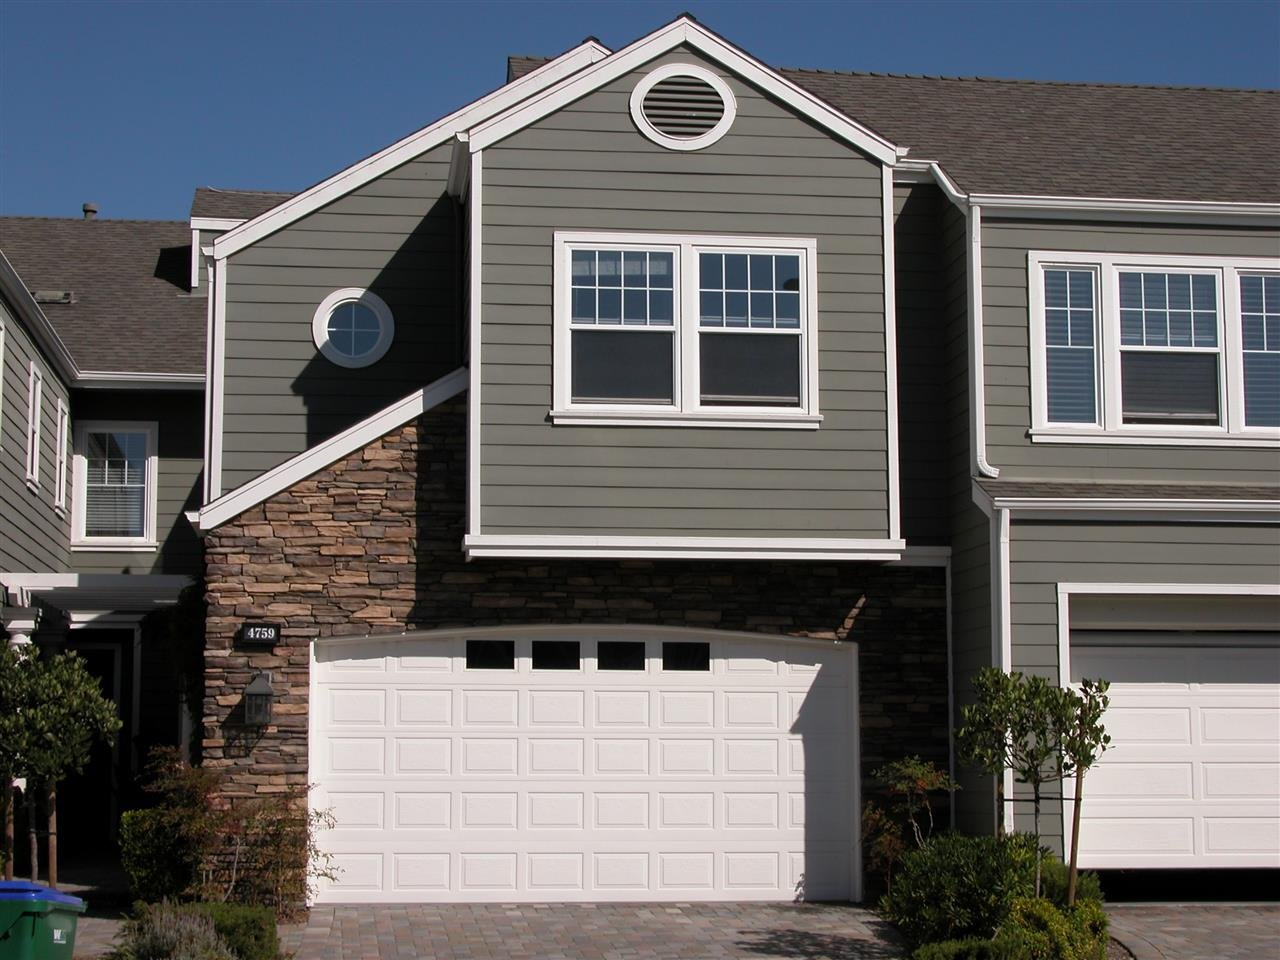 Main Photo: CARLSBAD WEST Townhome for sale or rent : 3 bedrooms : 4759 Beachwood Court in Carlsbad